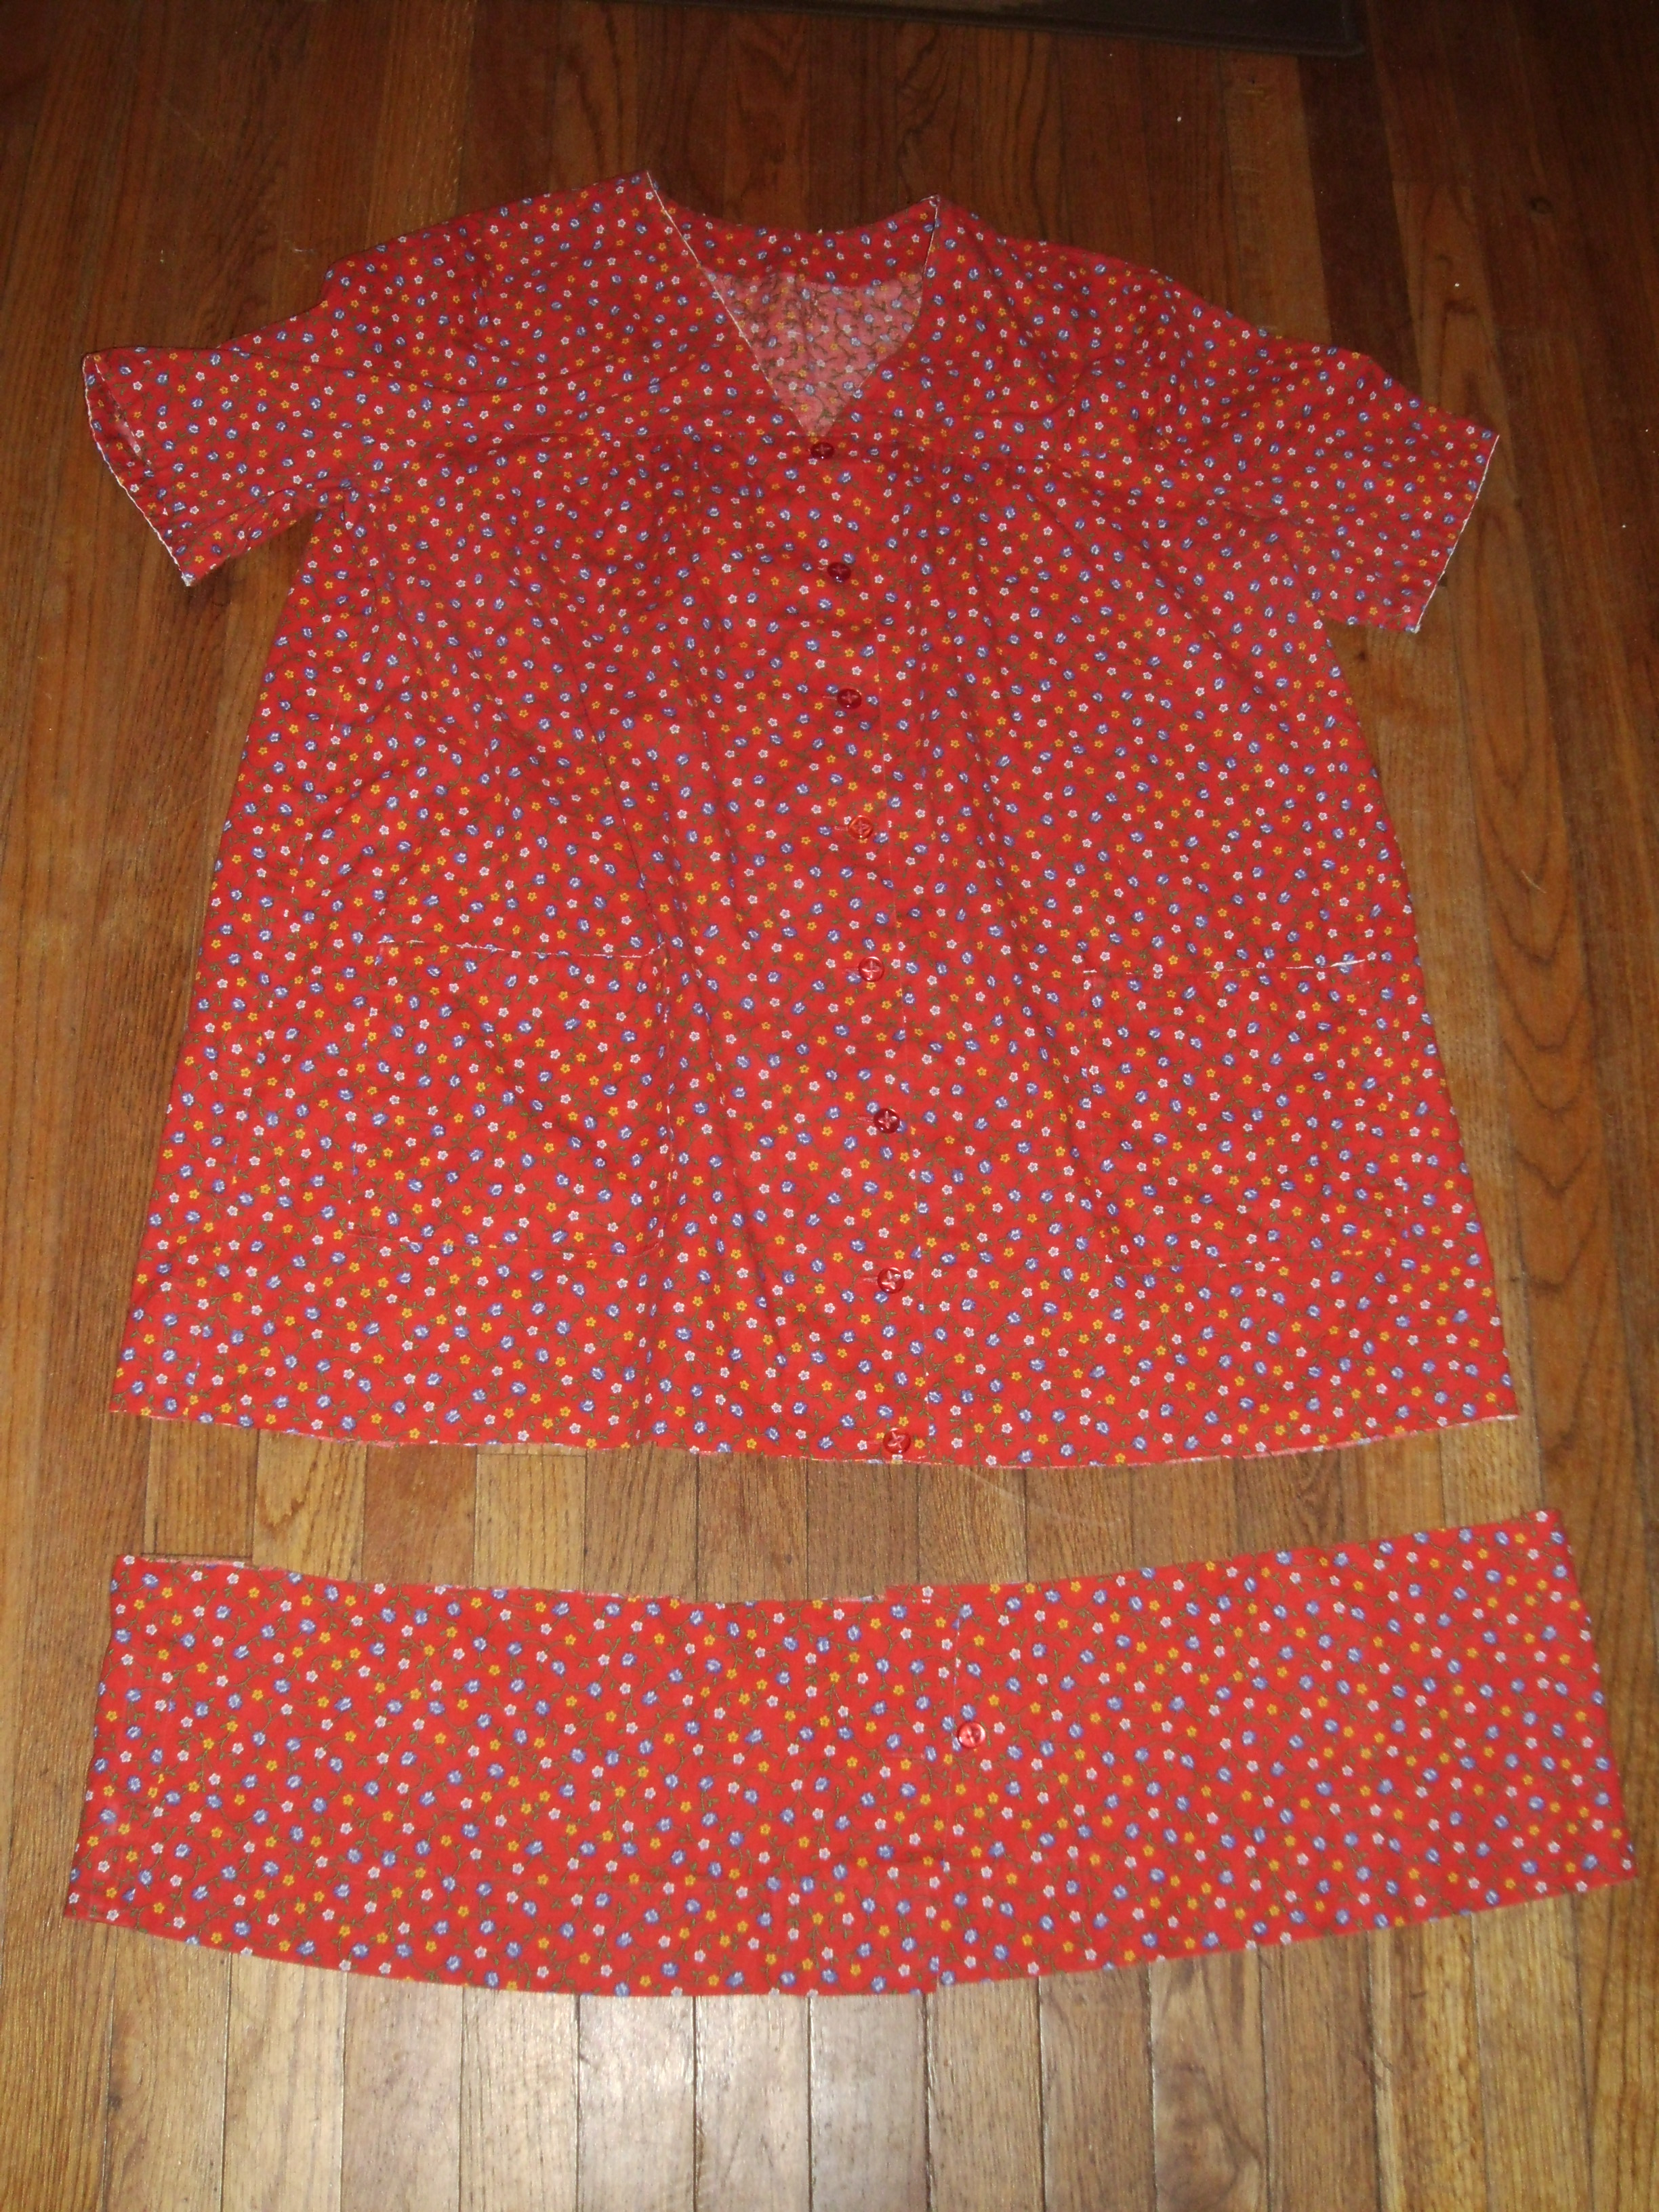 Day 119: Apple Jack Dress 5